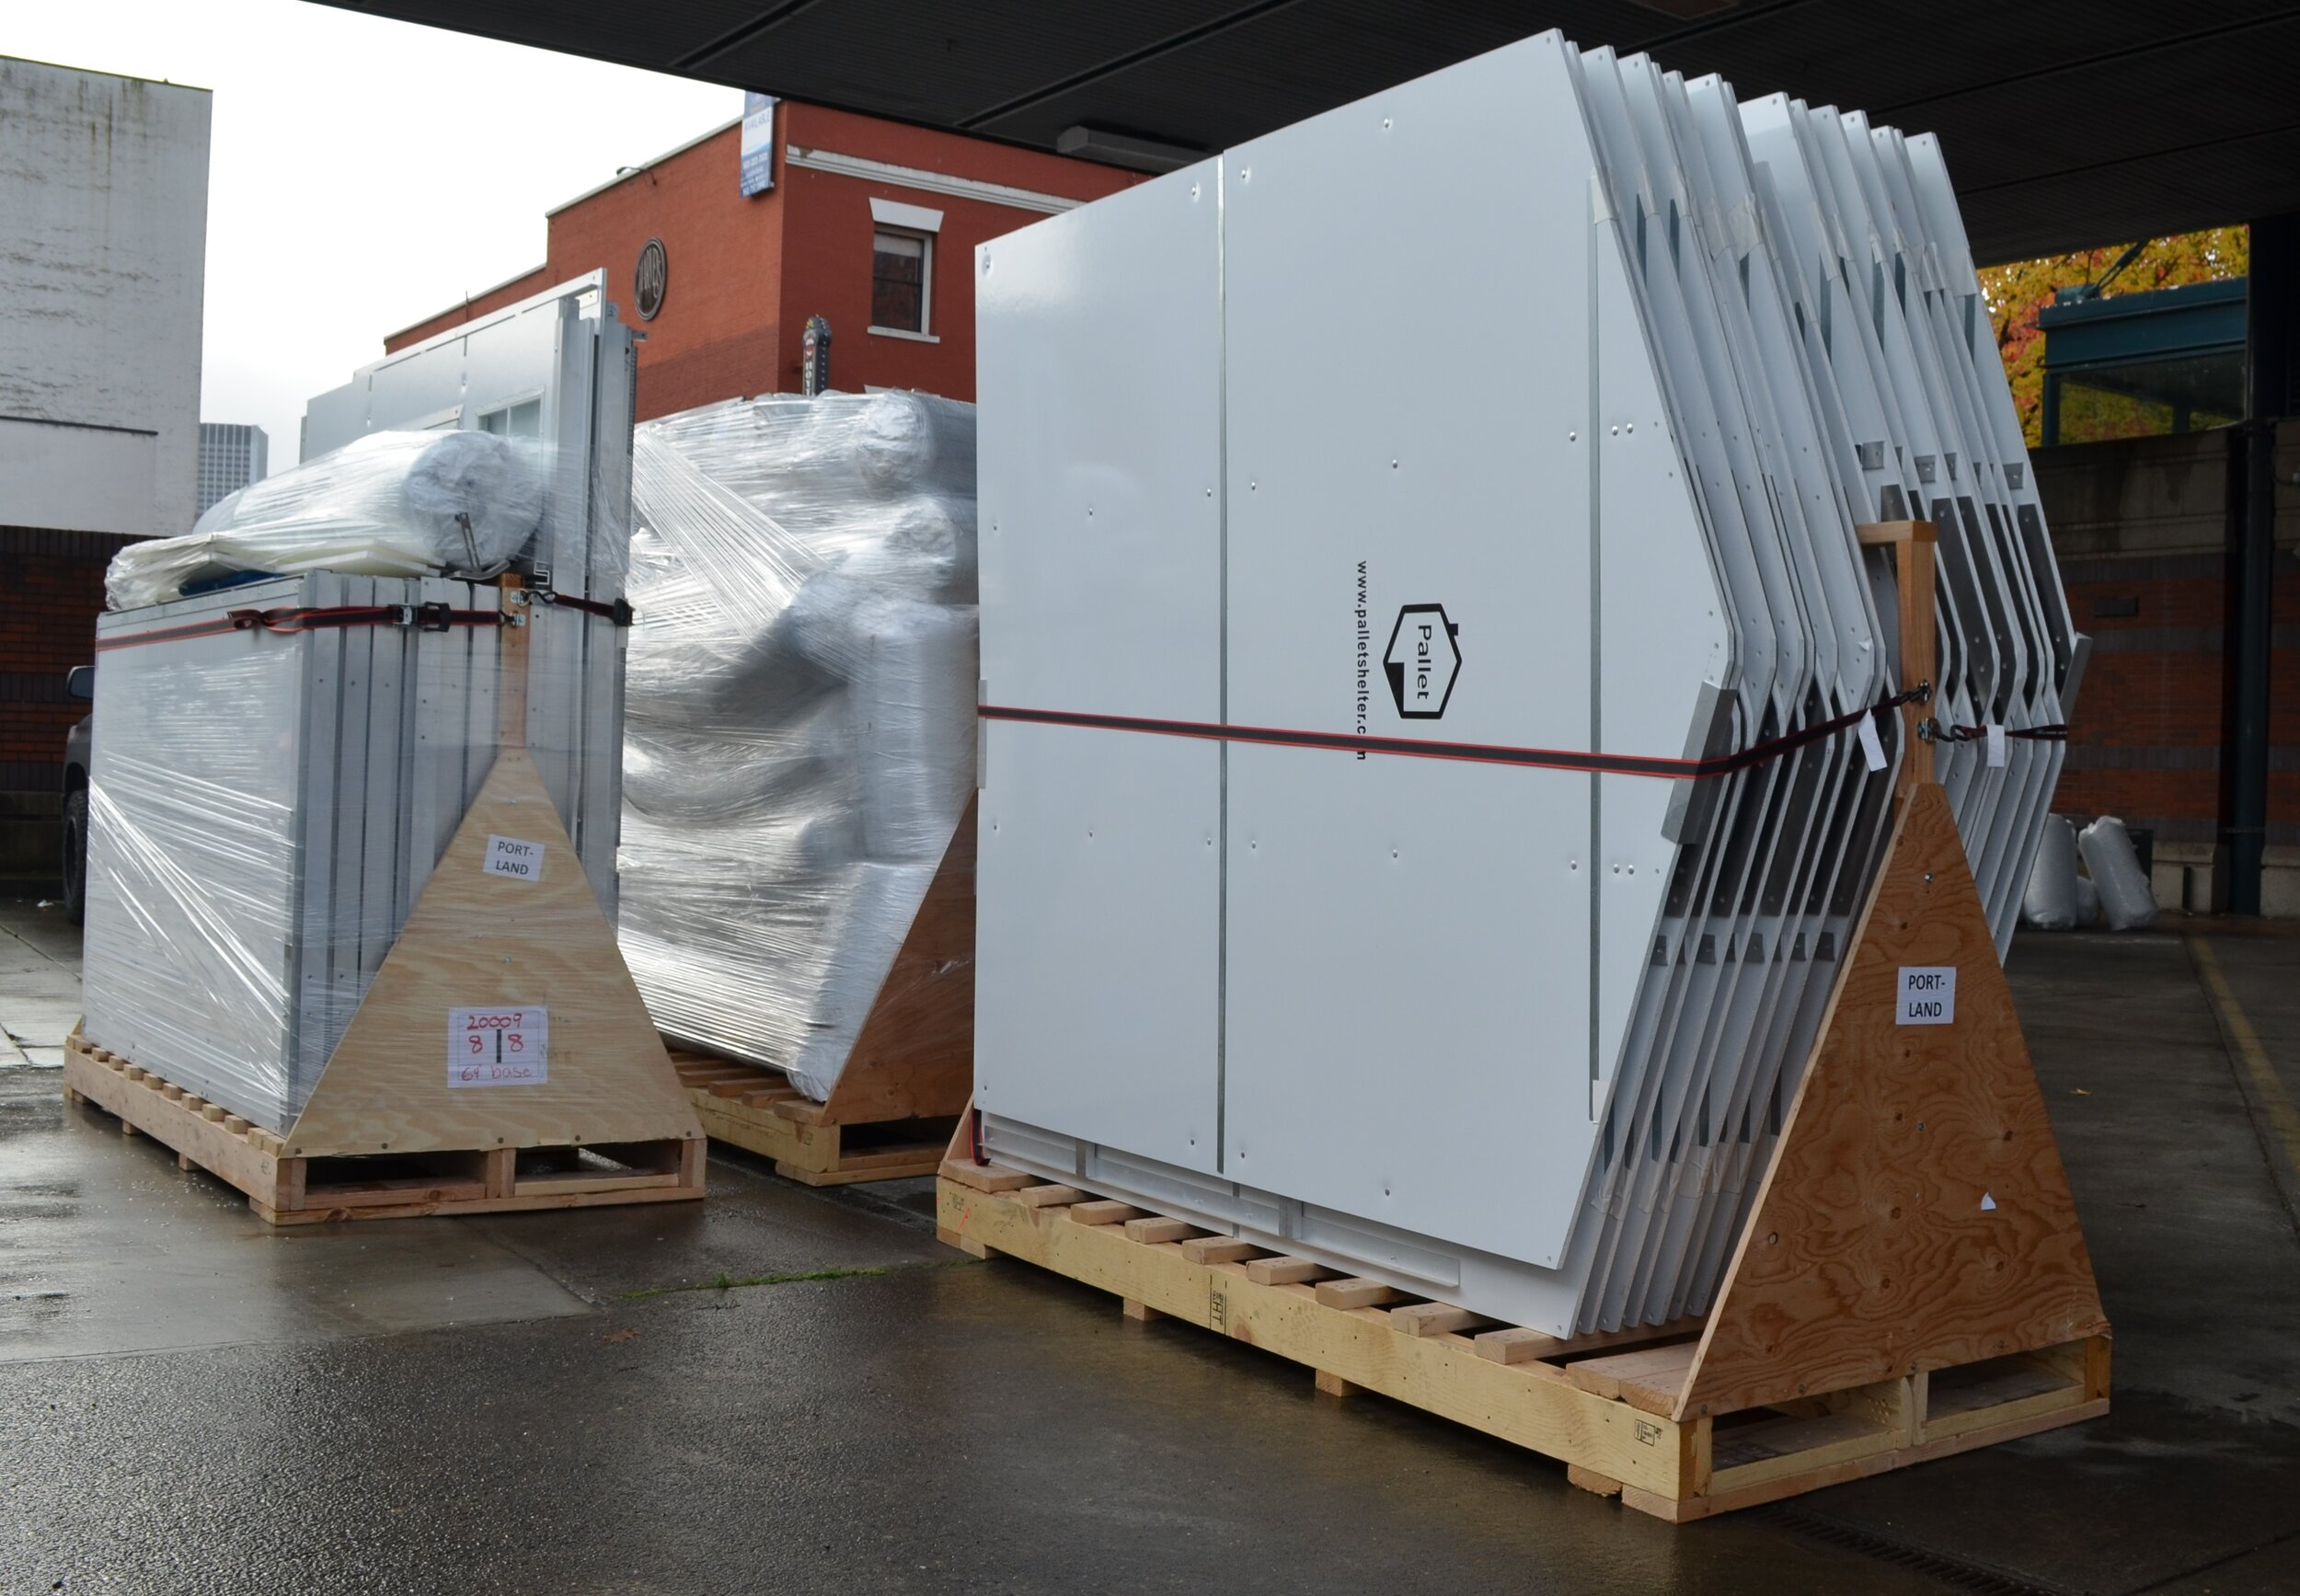 Pallet shelters panels are shipped on pallets. In this photo, the shelters are being unloaded in Portland, Oregon.